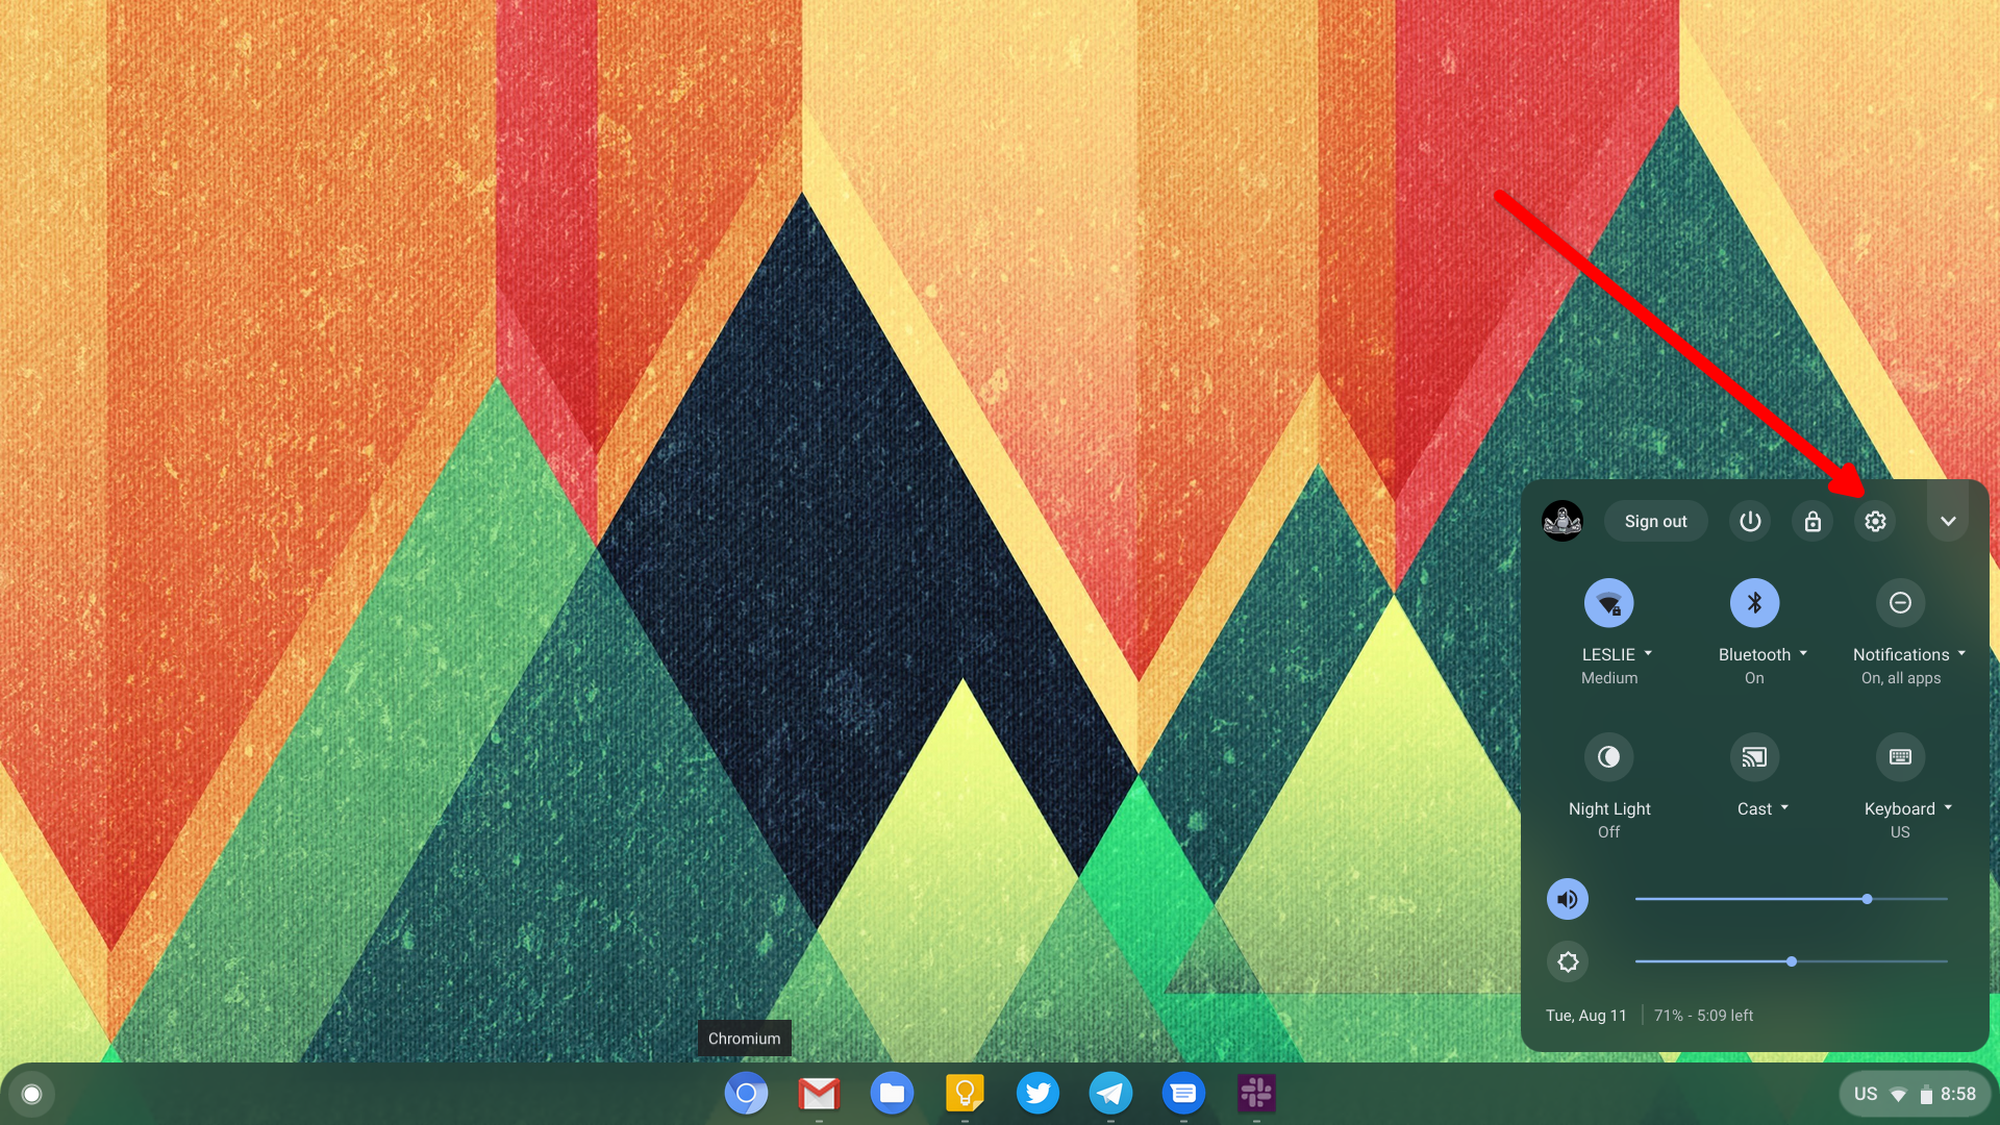 How To Enable Linux Apps On Chrome Os Android Us Apps And News U S America